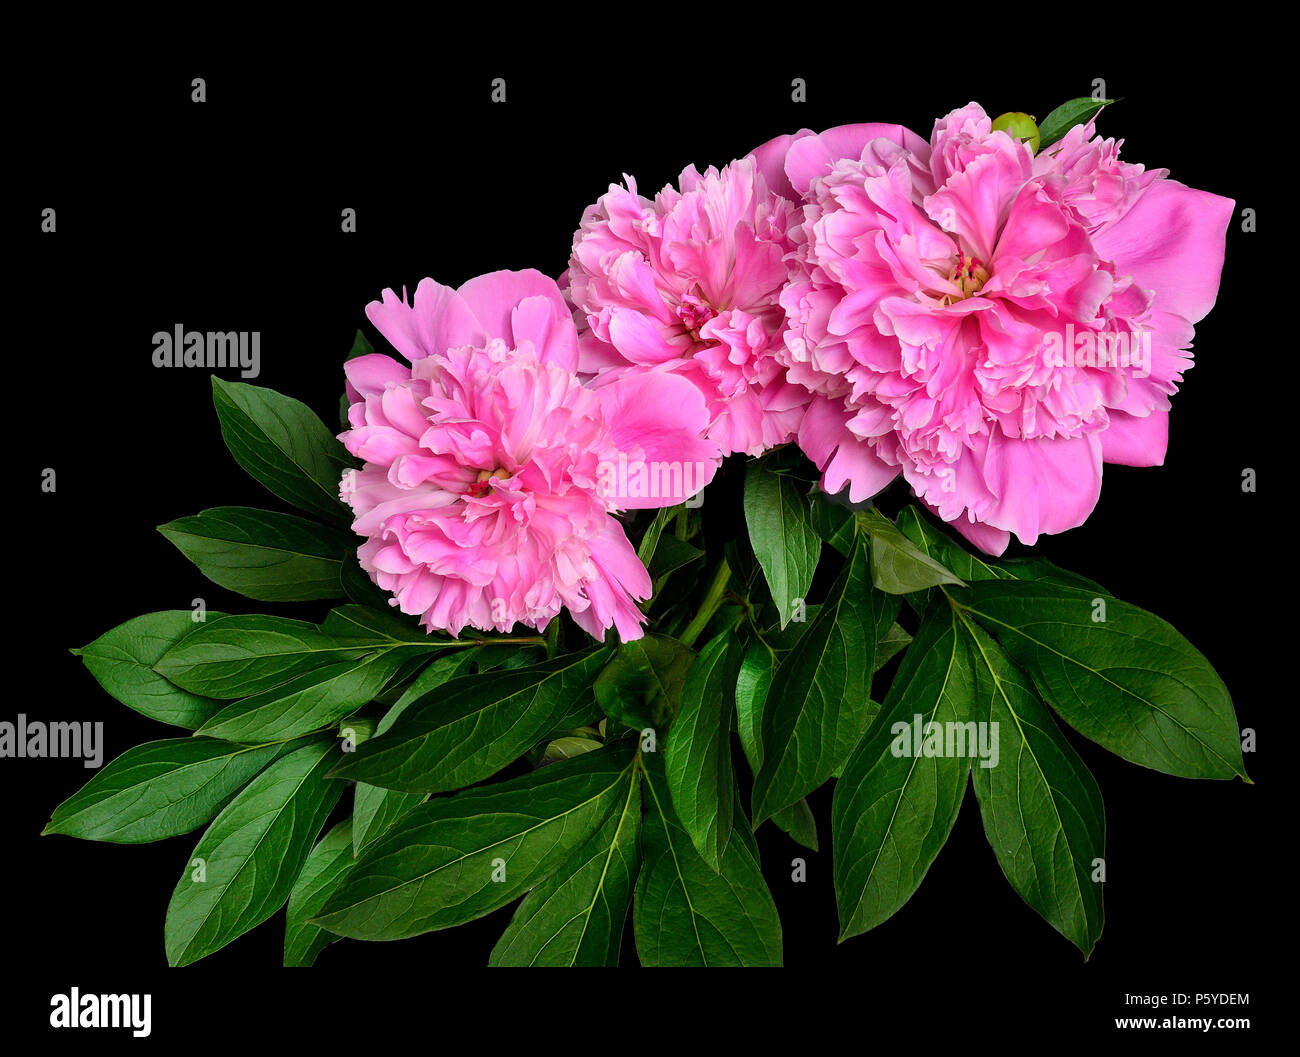 Garden flowers on black background stock photos garden flowers on bouquet of beautiful flowers pink luxuriant peonies with leaves isolated on a black background spring izmirmasajfo